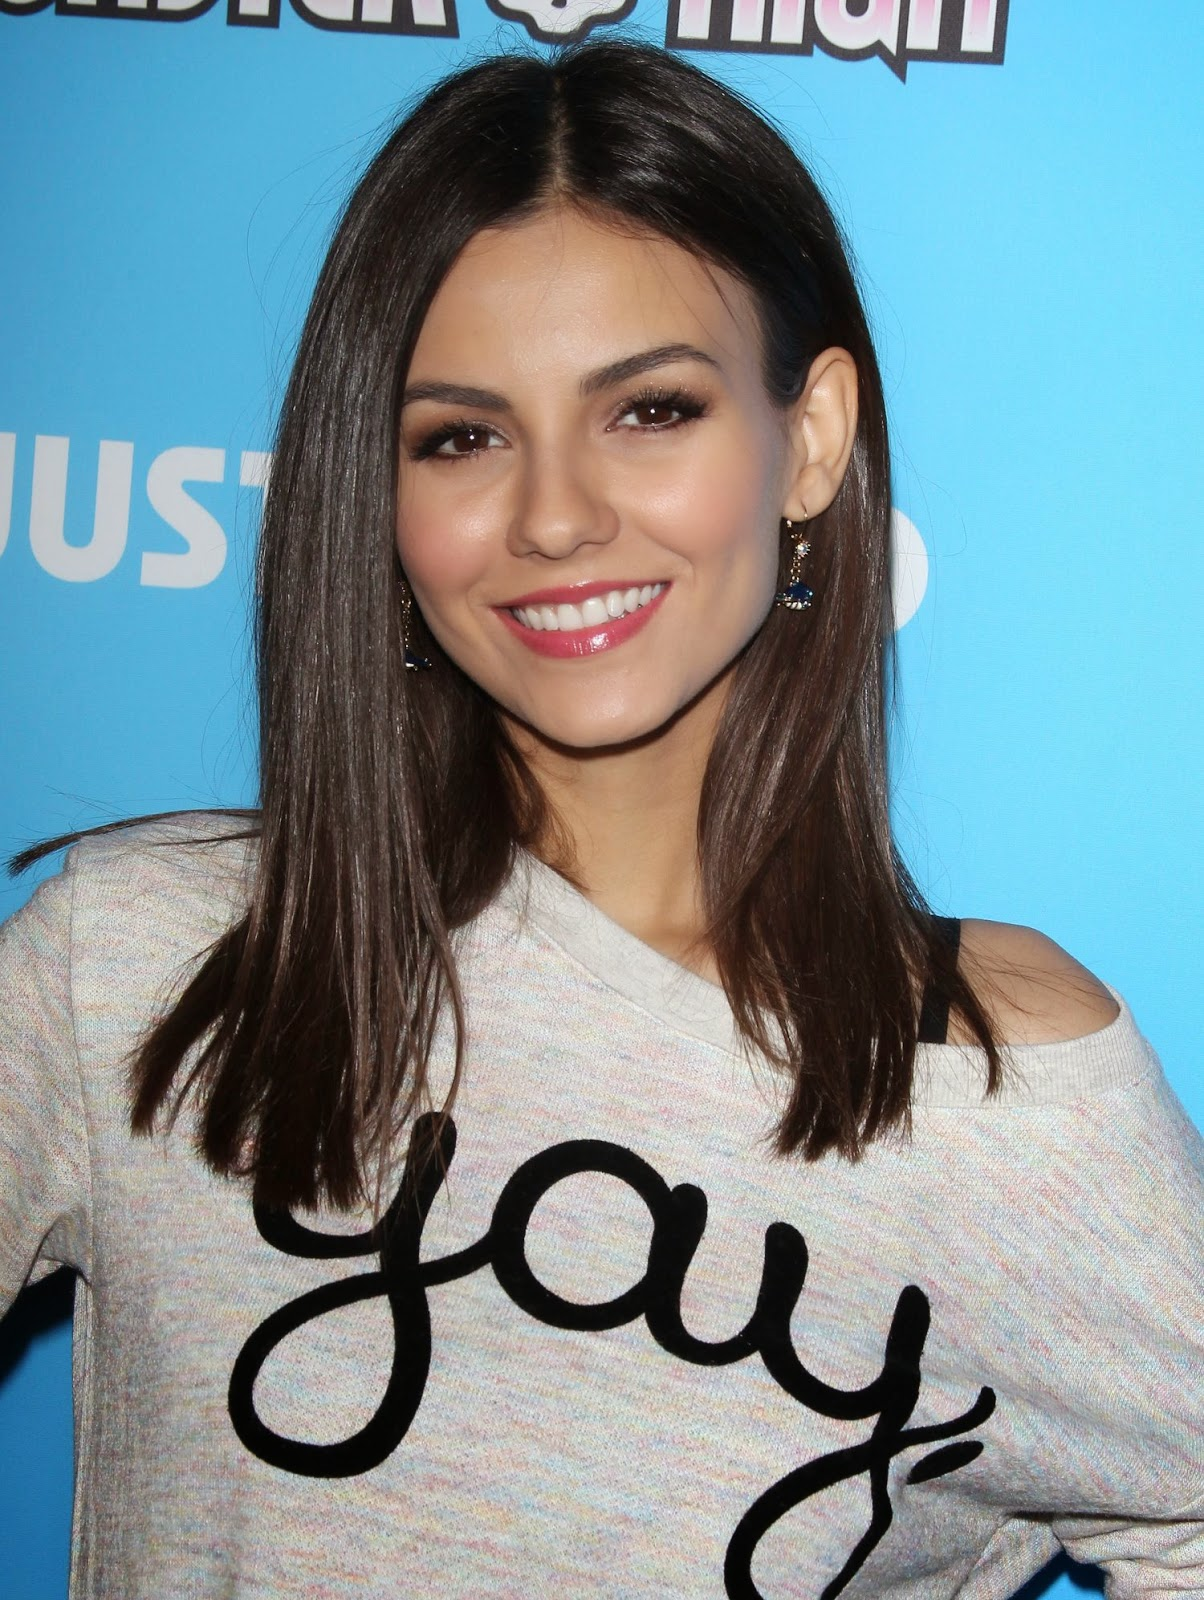 Victoria Justice at Just Jared's Throwback Thursday Roller Skating Party in LA